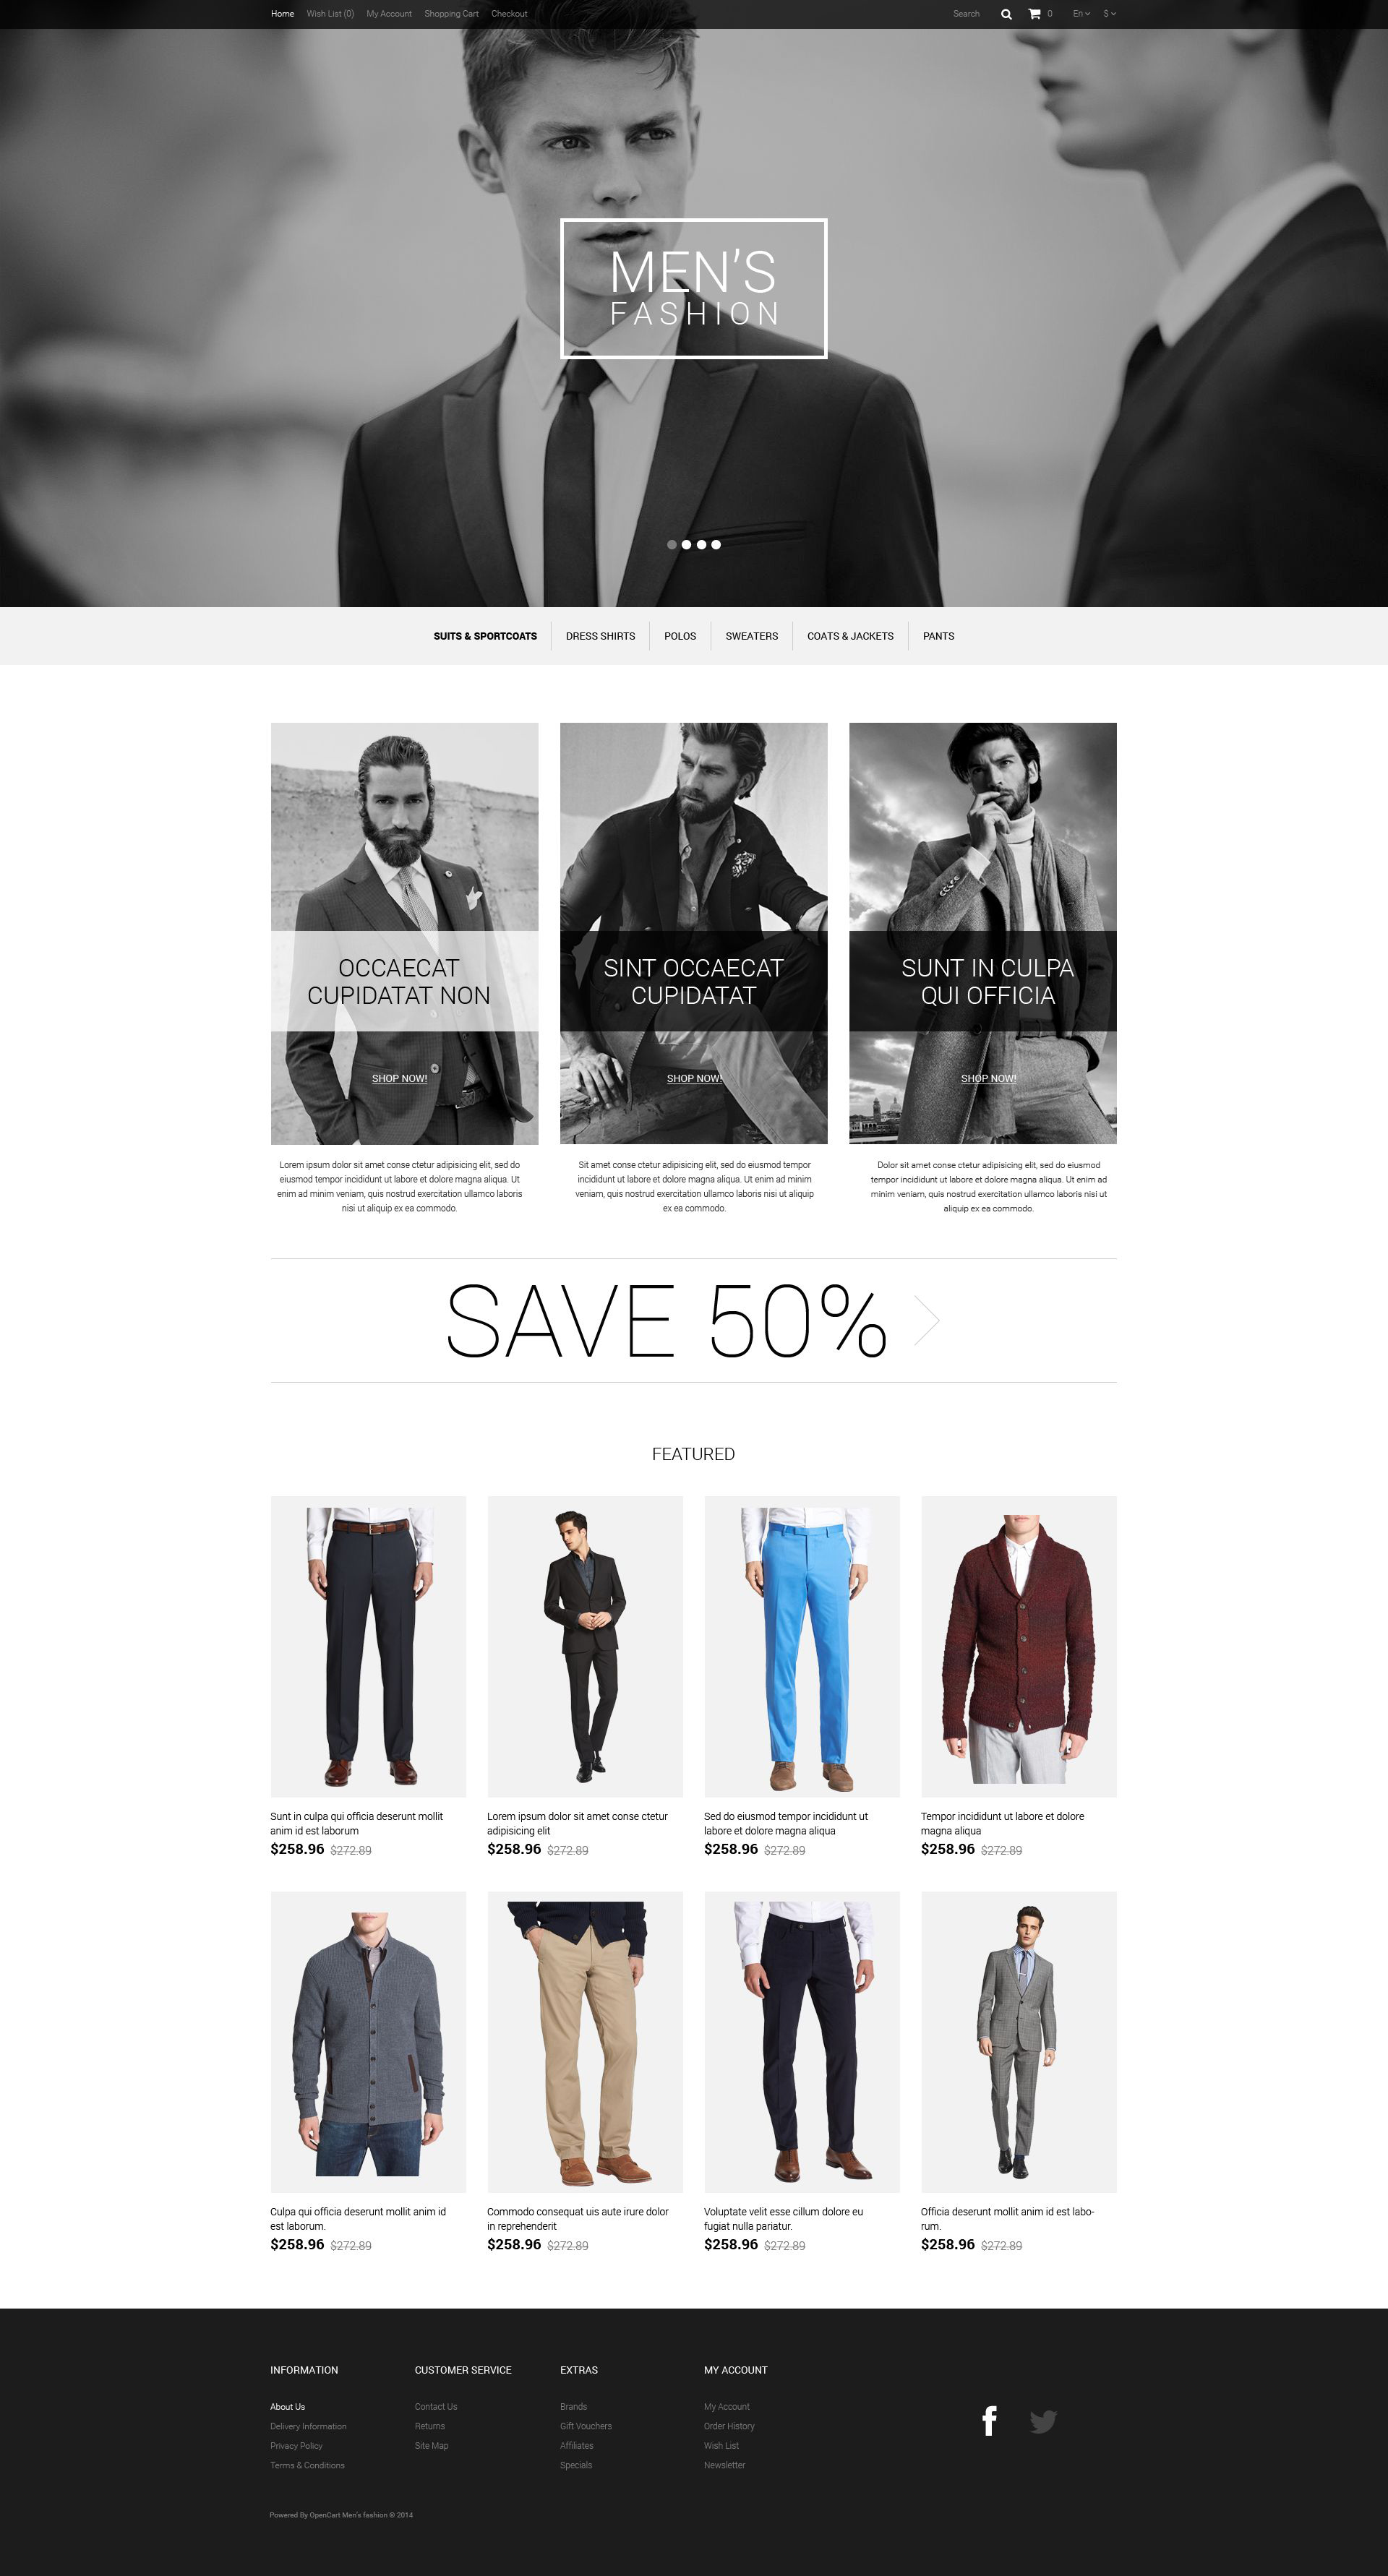 The Men's Fashion New OpenCart Design 54684, one of the best OpenCart templates of its kind (fashion, most popular), also known as Men's fashion new OpenCart template, style OpenCart template, brand OpenCart template, lingerie company OpenCart template, women OpenCart template, sexy classic OpenCart template, stylish  different OpenCart template, nails OpenCart template, SPA cosmetic OpenCart template, health care OpenCart template, hair and related with Men's fashion new, style, brand, lingerie company, women, sexy classic, stylish  different, nails, SPA cosmetic, health care, hair, etc.